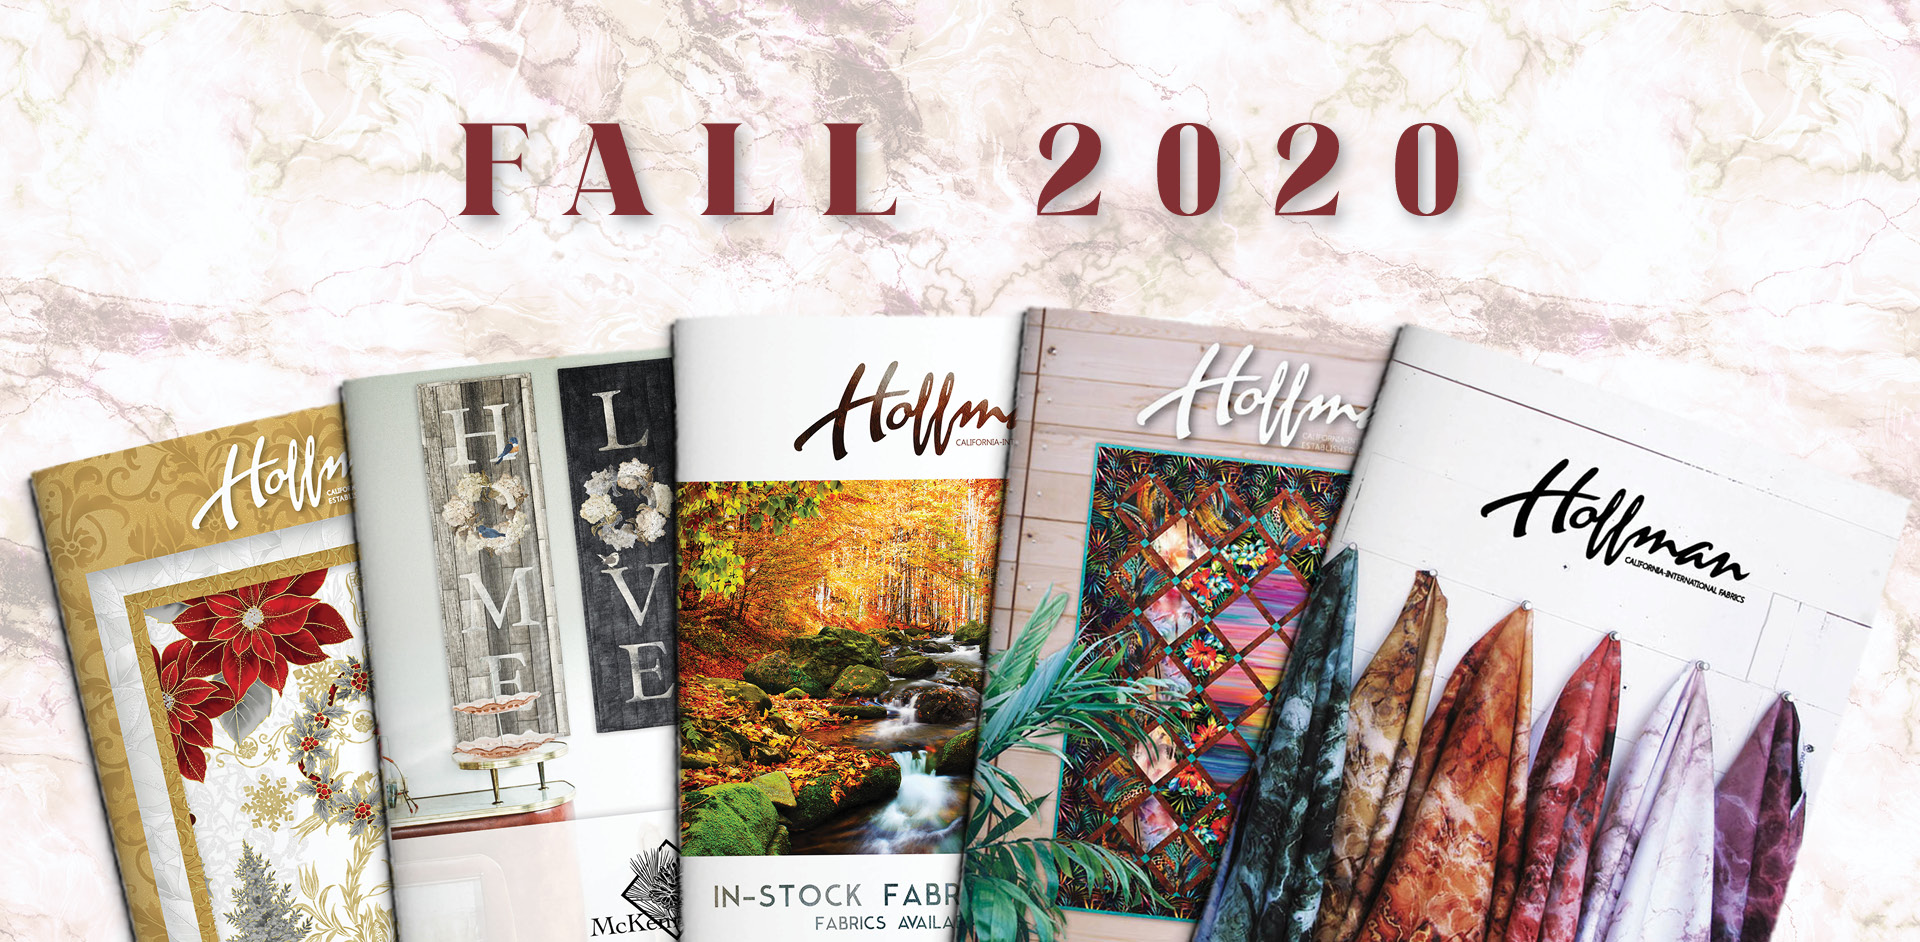 01-Fall 2020 catalogs